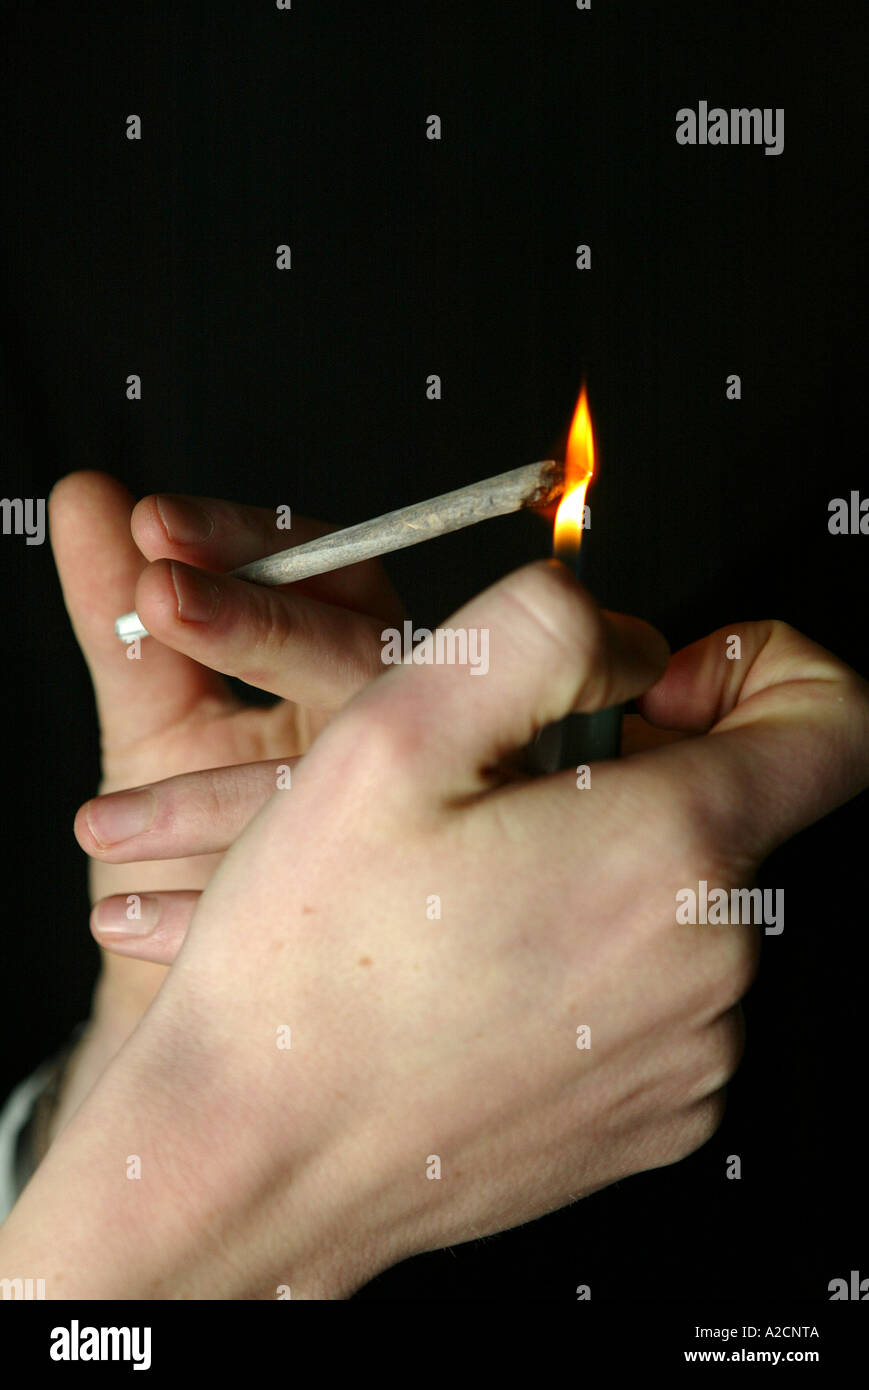 cannabis smoker - Stock Image